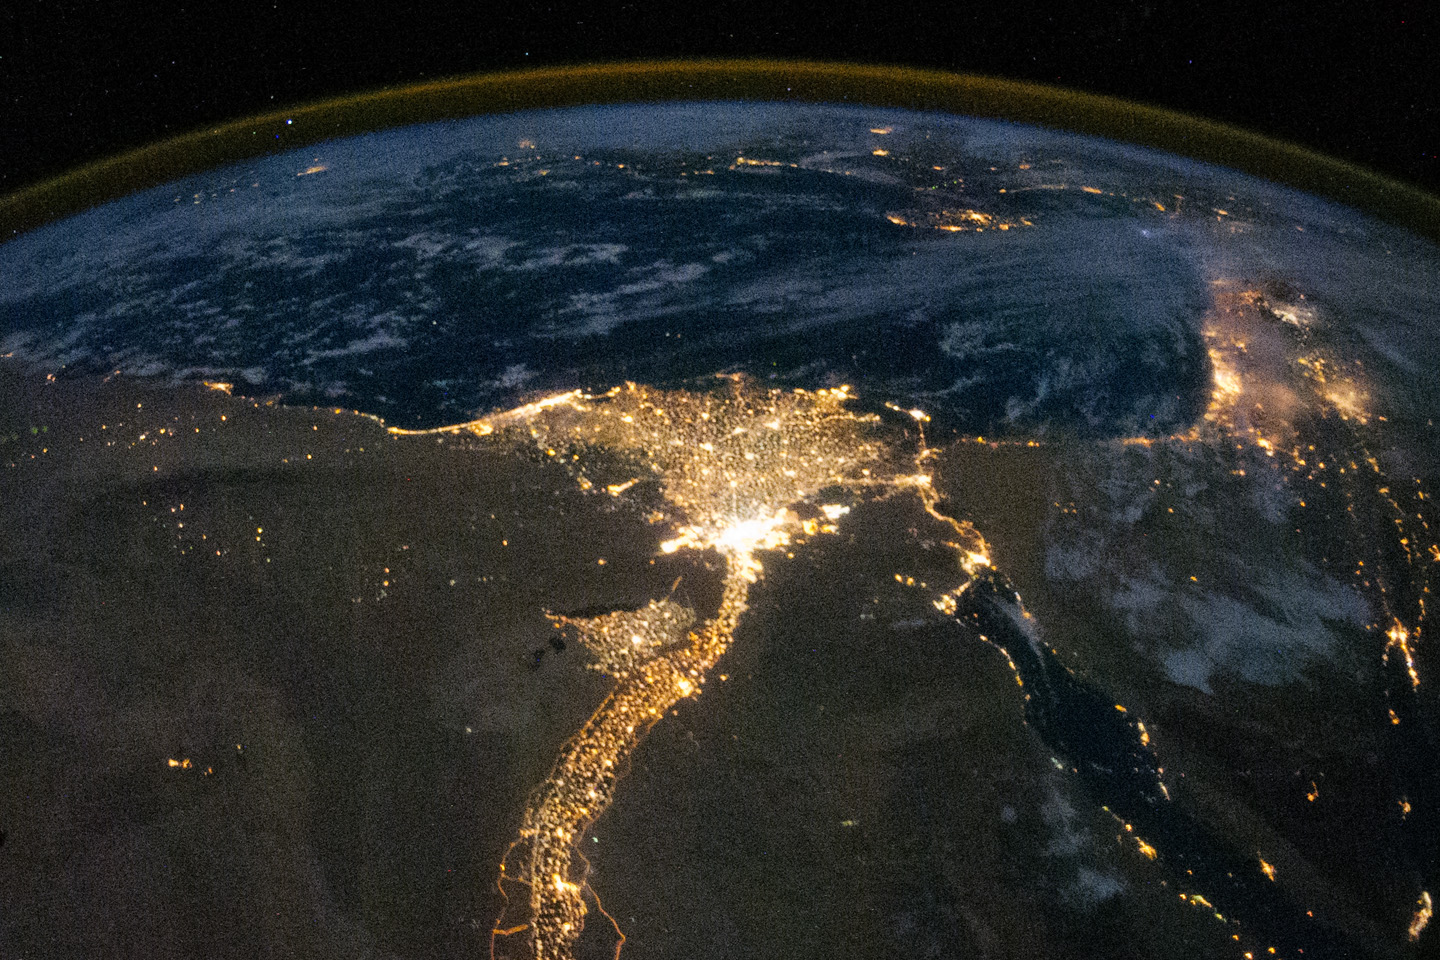 "Even today, Egypt's population is concentrated along the banks of the Nile and in the Nile delta. This nighttime photo (taken by an astronaut on the International Space Station) shows the lights of homes along the ""stem"" of the Nile and fanning out in the delta where the river reaches the Mediterranean Sea. (NASA)"